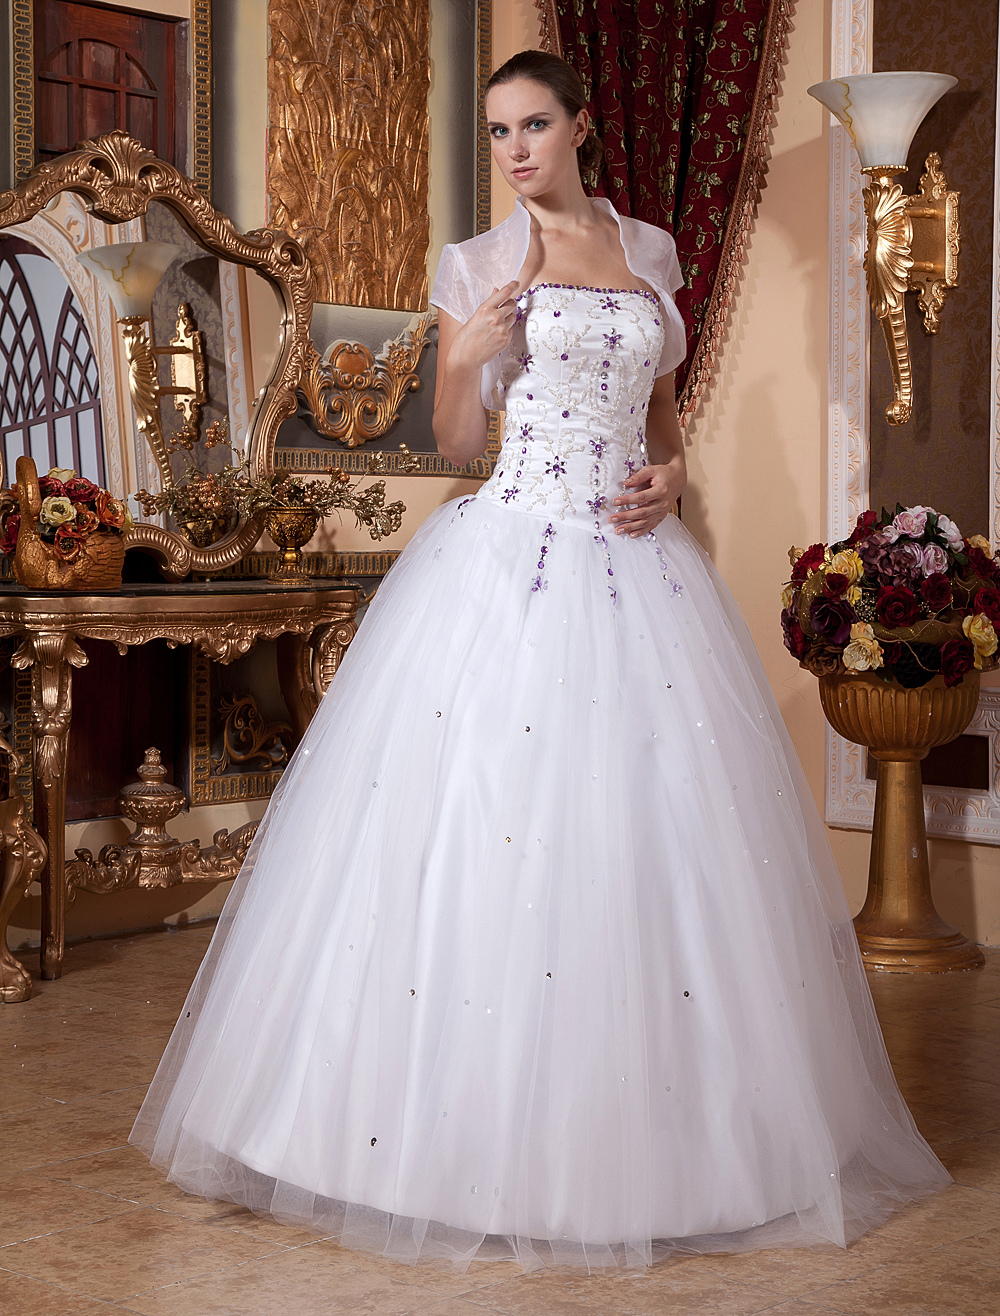 Buy White Wedding Dress Ball Gown Prom Dress Two Piece Rhinestones Beaded Strapless Quinceanera Dress With Jacket for $193.49 in Milanoo store